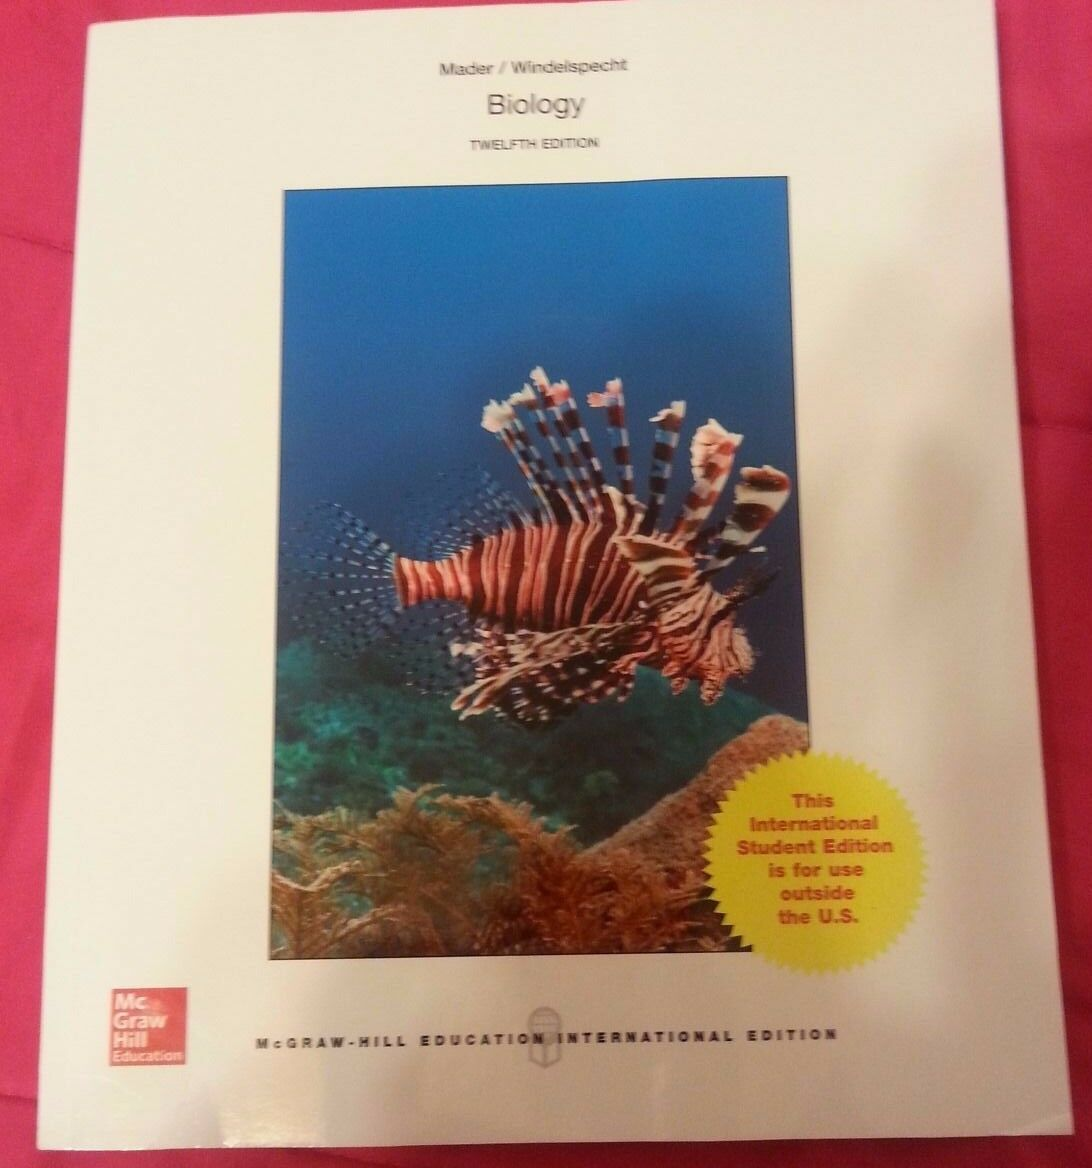 Ap biology mader biology by sylvia mader 2012 hardcover student ap biology mader biology by sylvia mader 2012 hardcover student edition of textbook ebay fandeluxe